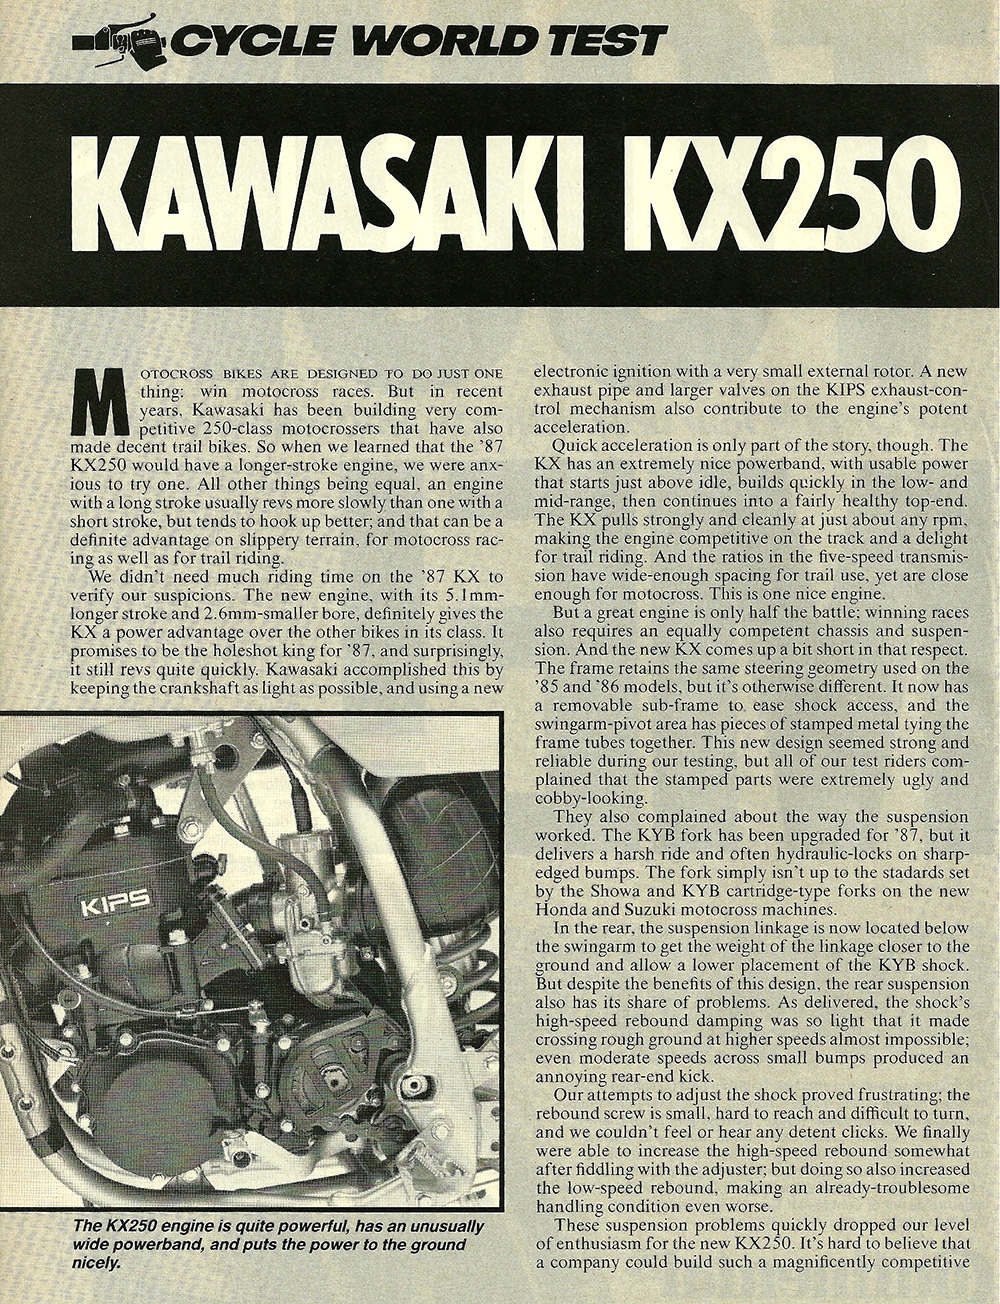 1987 Kawasaki KX250 road test 01.jpg